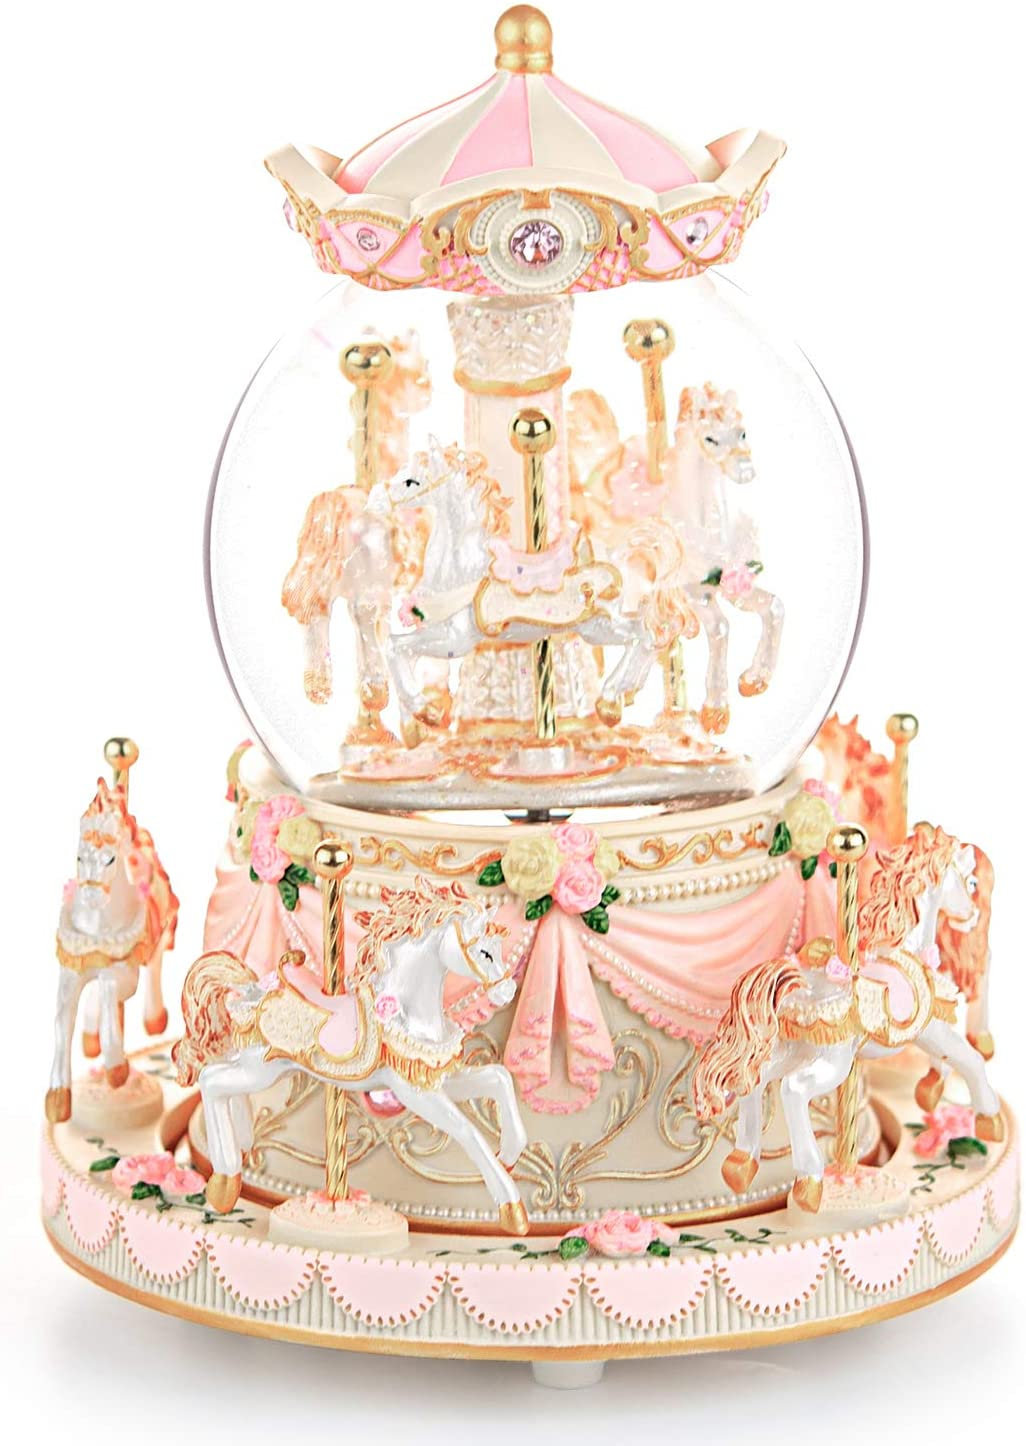 Carousel Snow Globe Gift, Music Box with Light 8-Horse Windup Musical Christmas Valentine Birthday Anniversary Present for Daughter Wife Girl Kids Clockwork Melody Canon